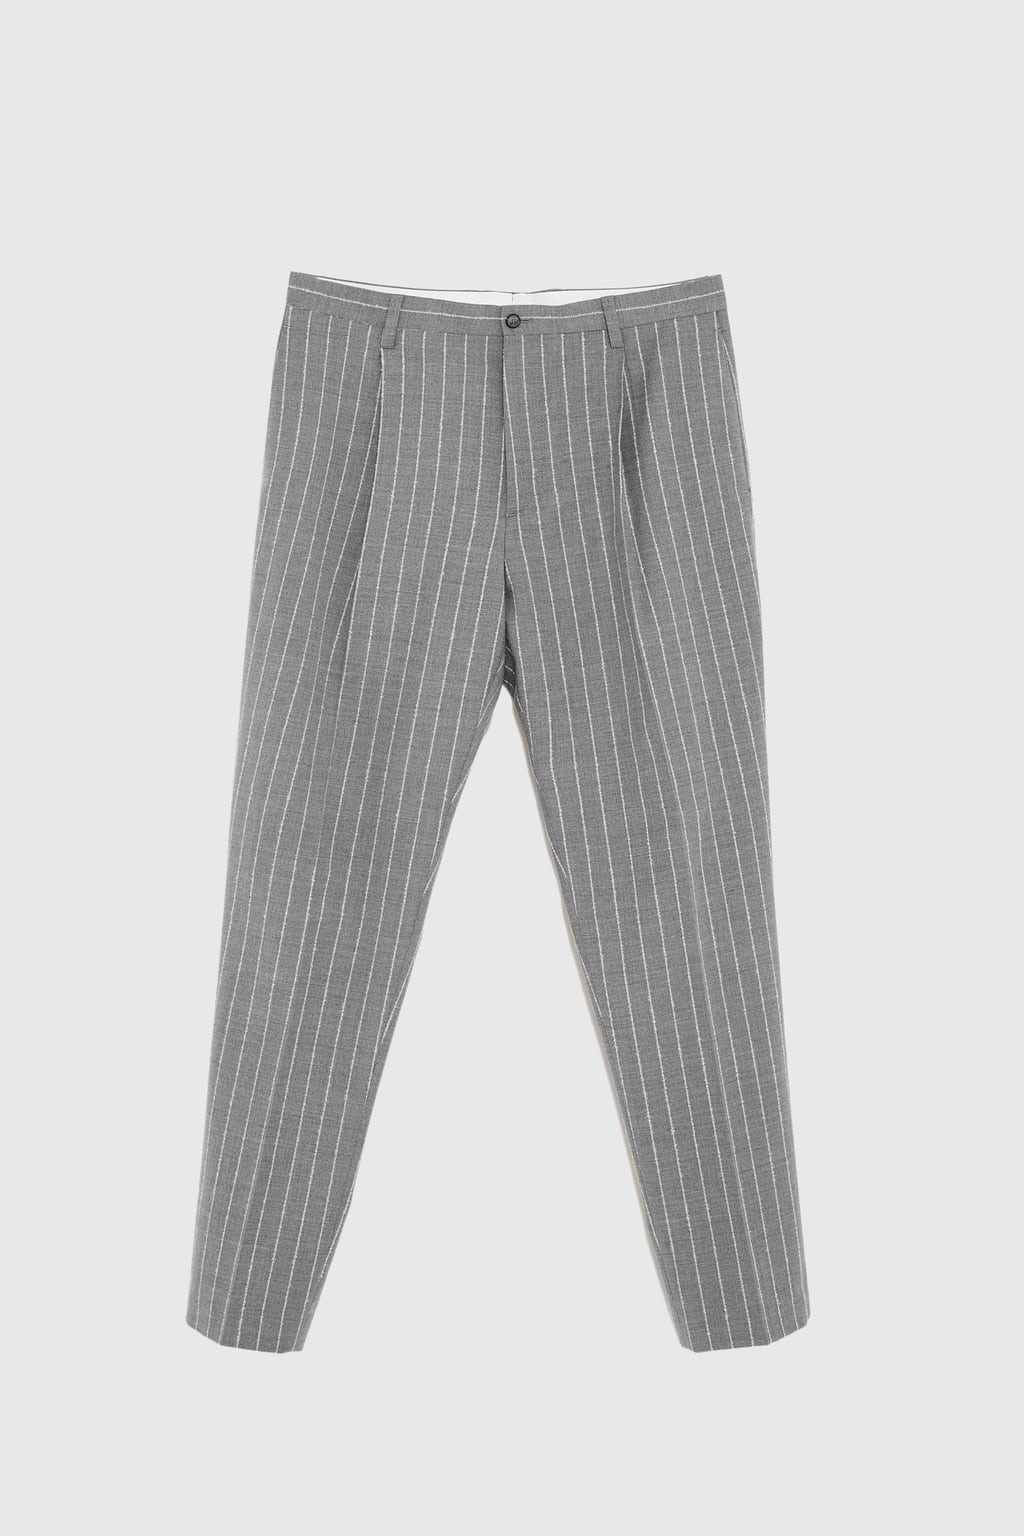 Zara Grey Pinstripe Trousers